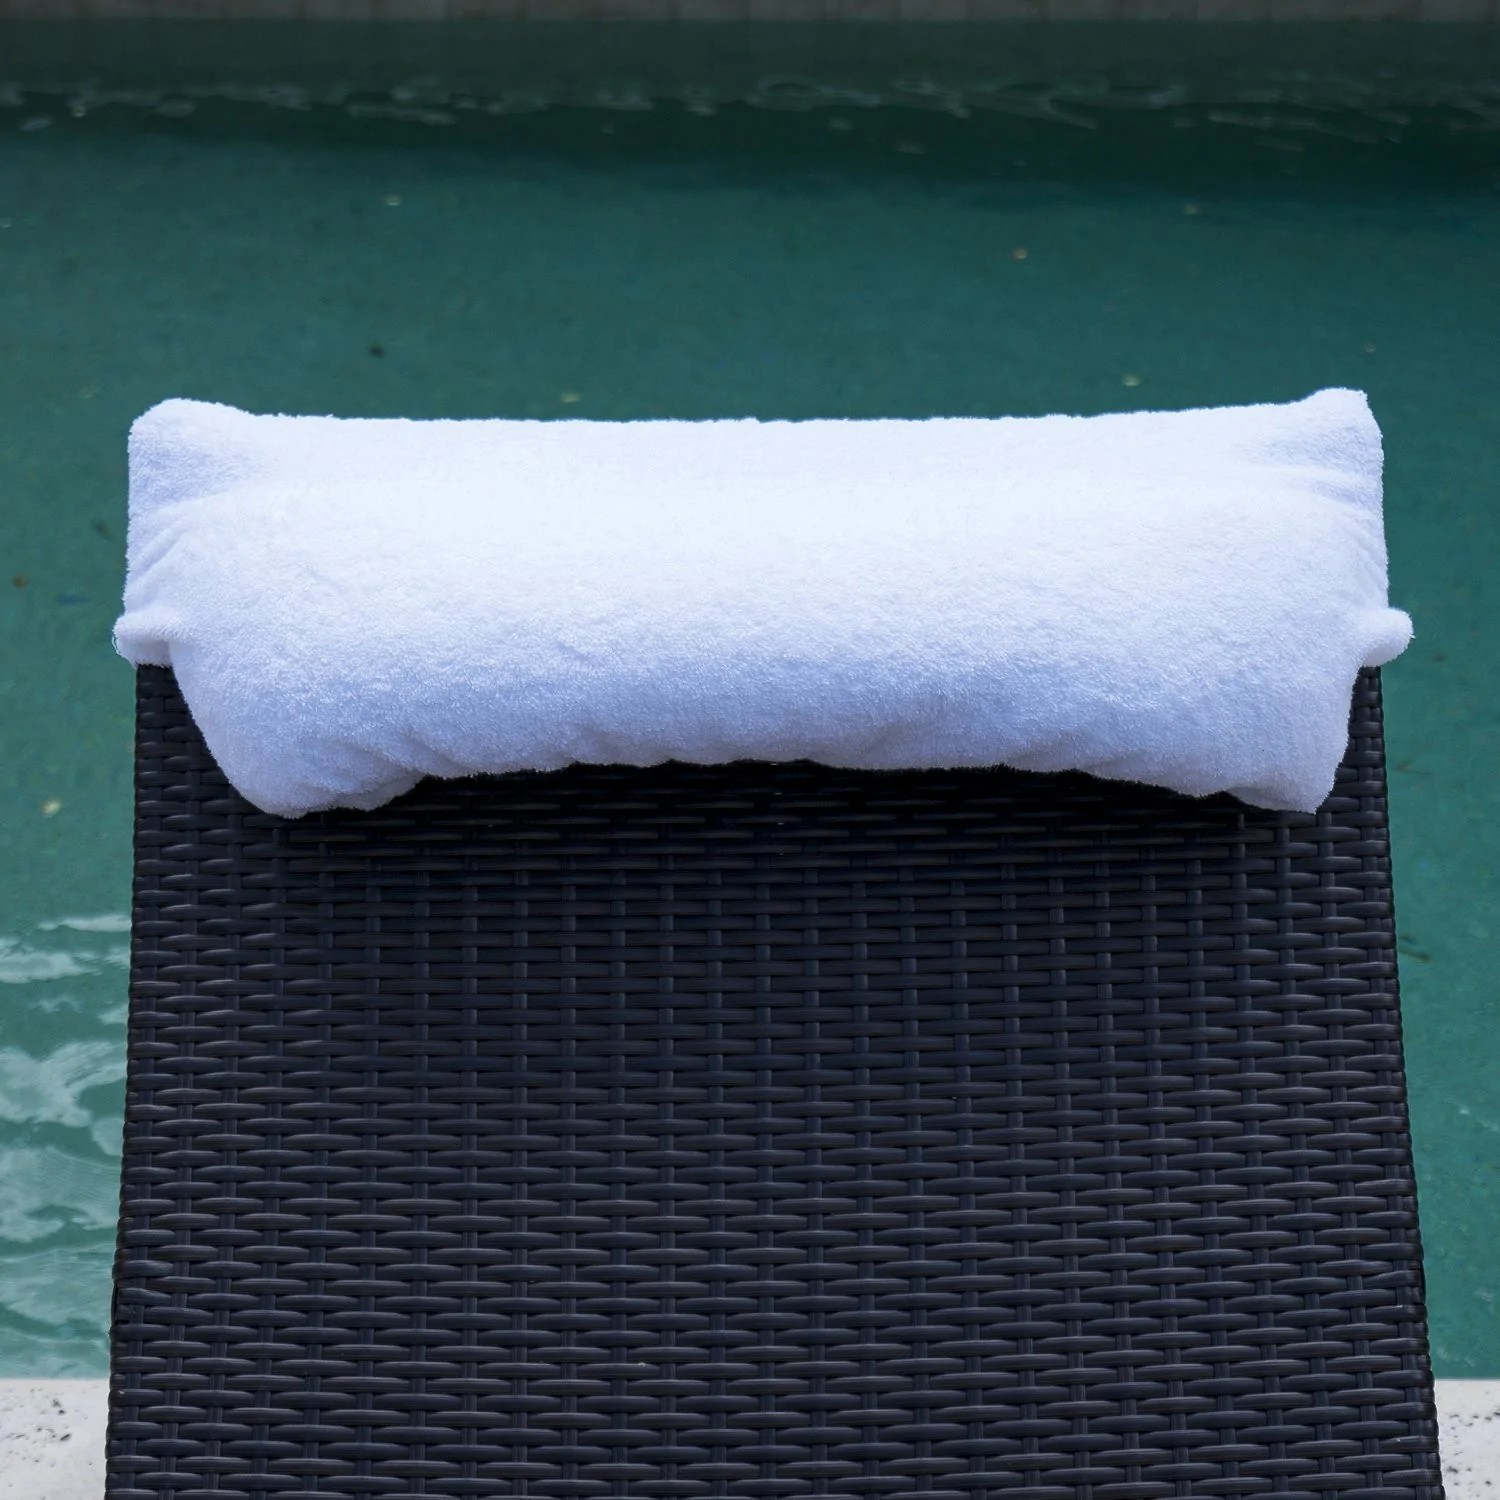 terry towel lounge chair covers orthopedic chairs for home winter park co resort